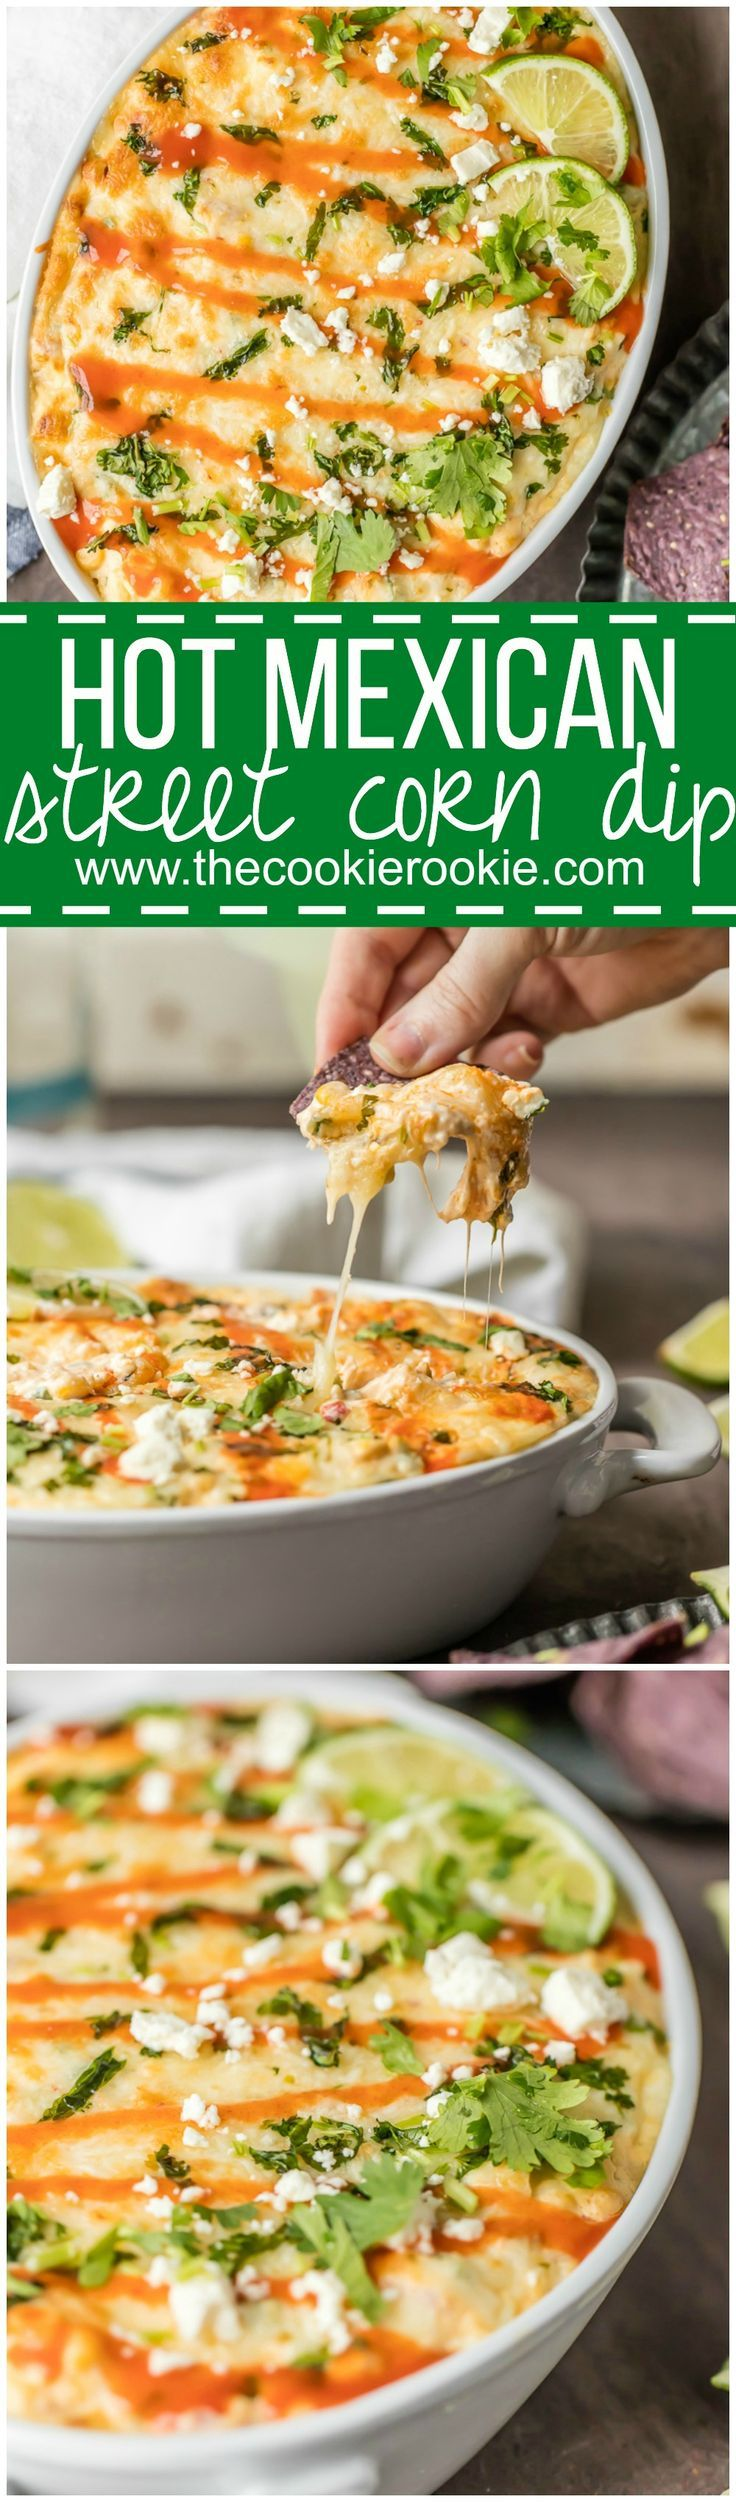 Hot Mexican Street Corn Dip - Everything you love about spicy Mexican street corn with a cheesy baked twist. BEST DIP EVER.